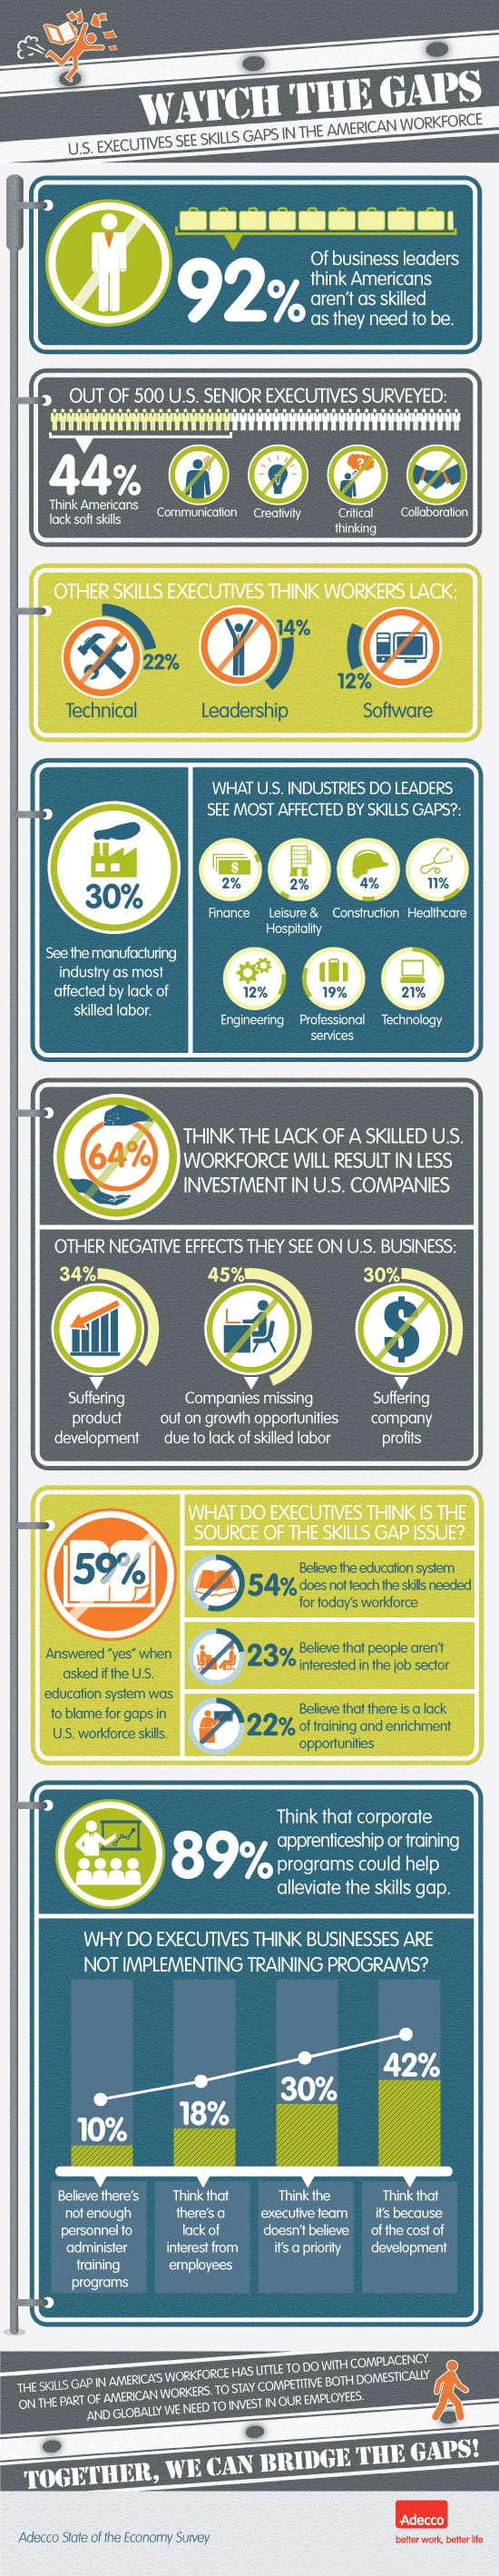 See how U.S. executives see the skills gap impacting the American workforce.